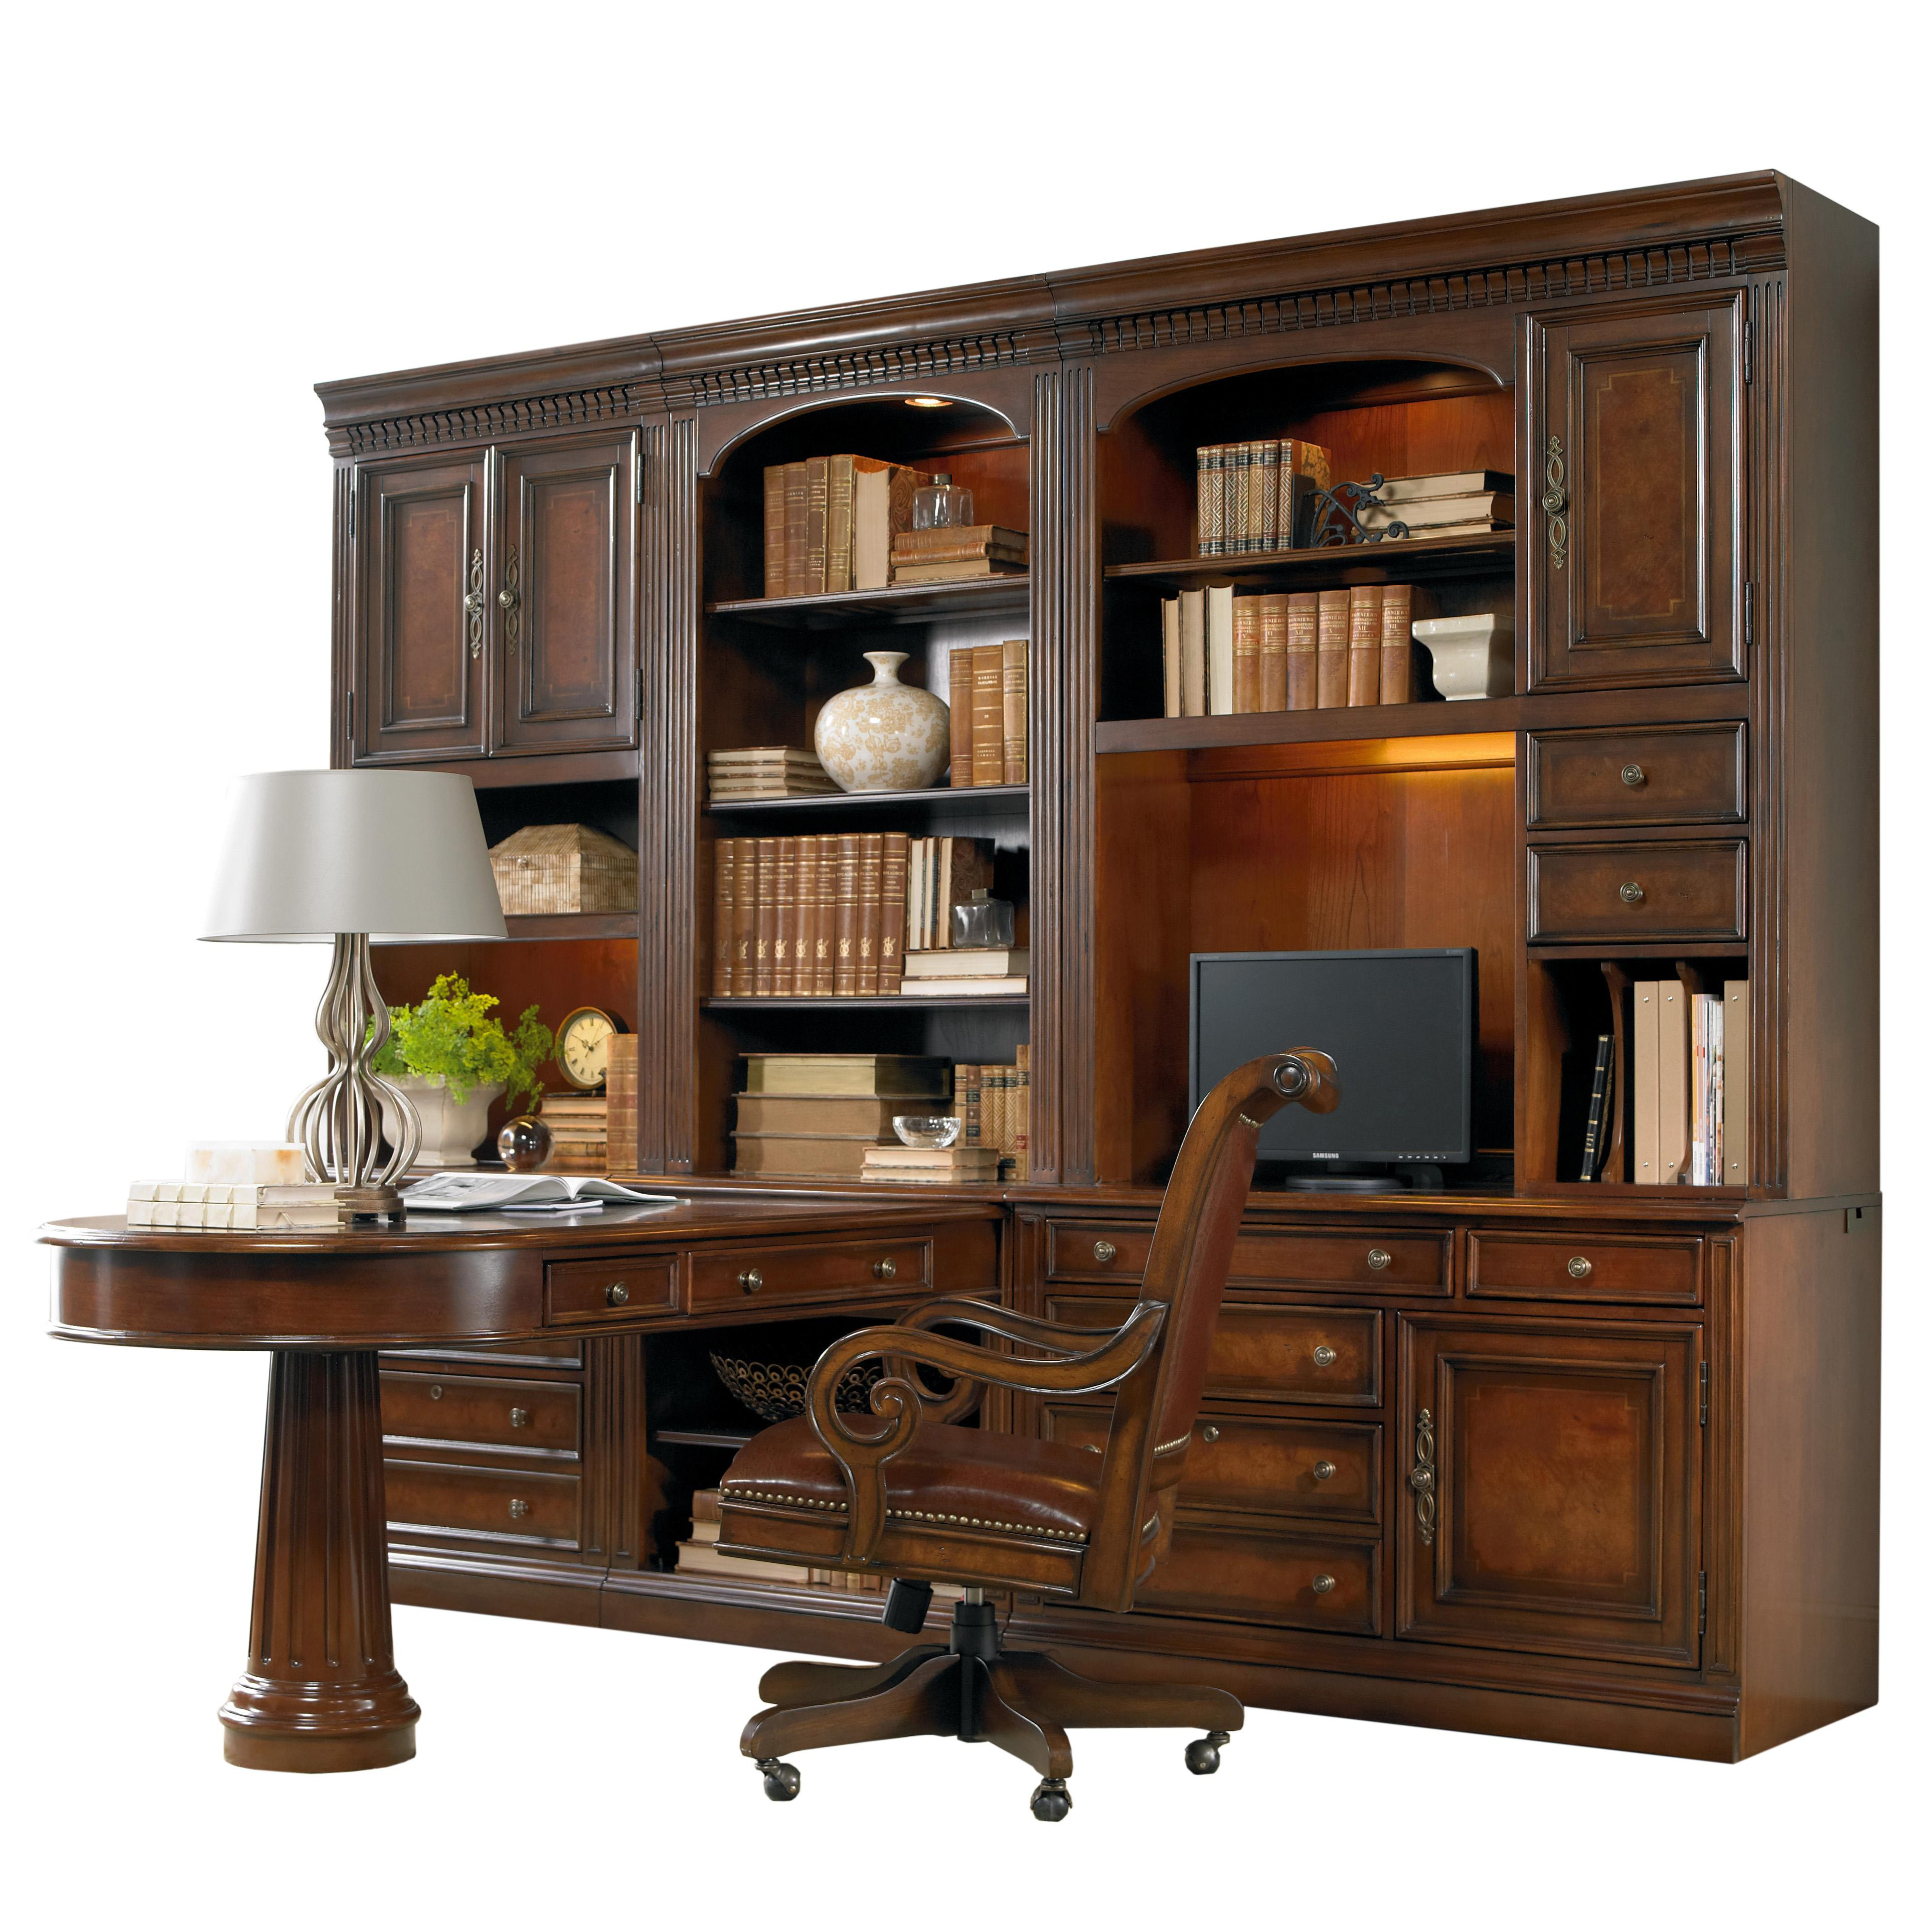 European Renaissance II Office Wall Unit with Peninsula Desk by Hooker Furniture at Baer's Furniture